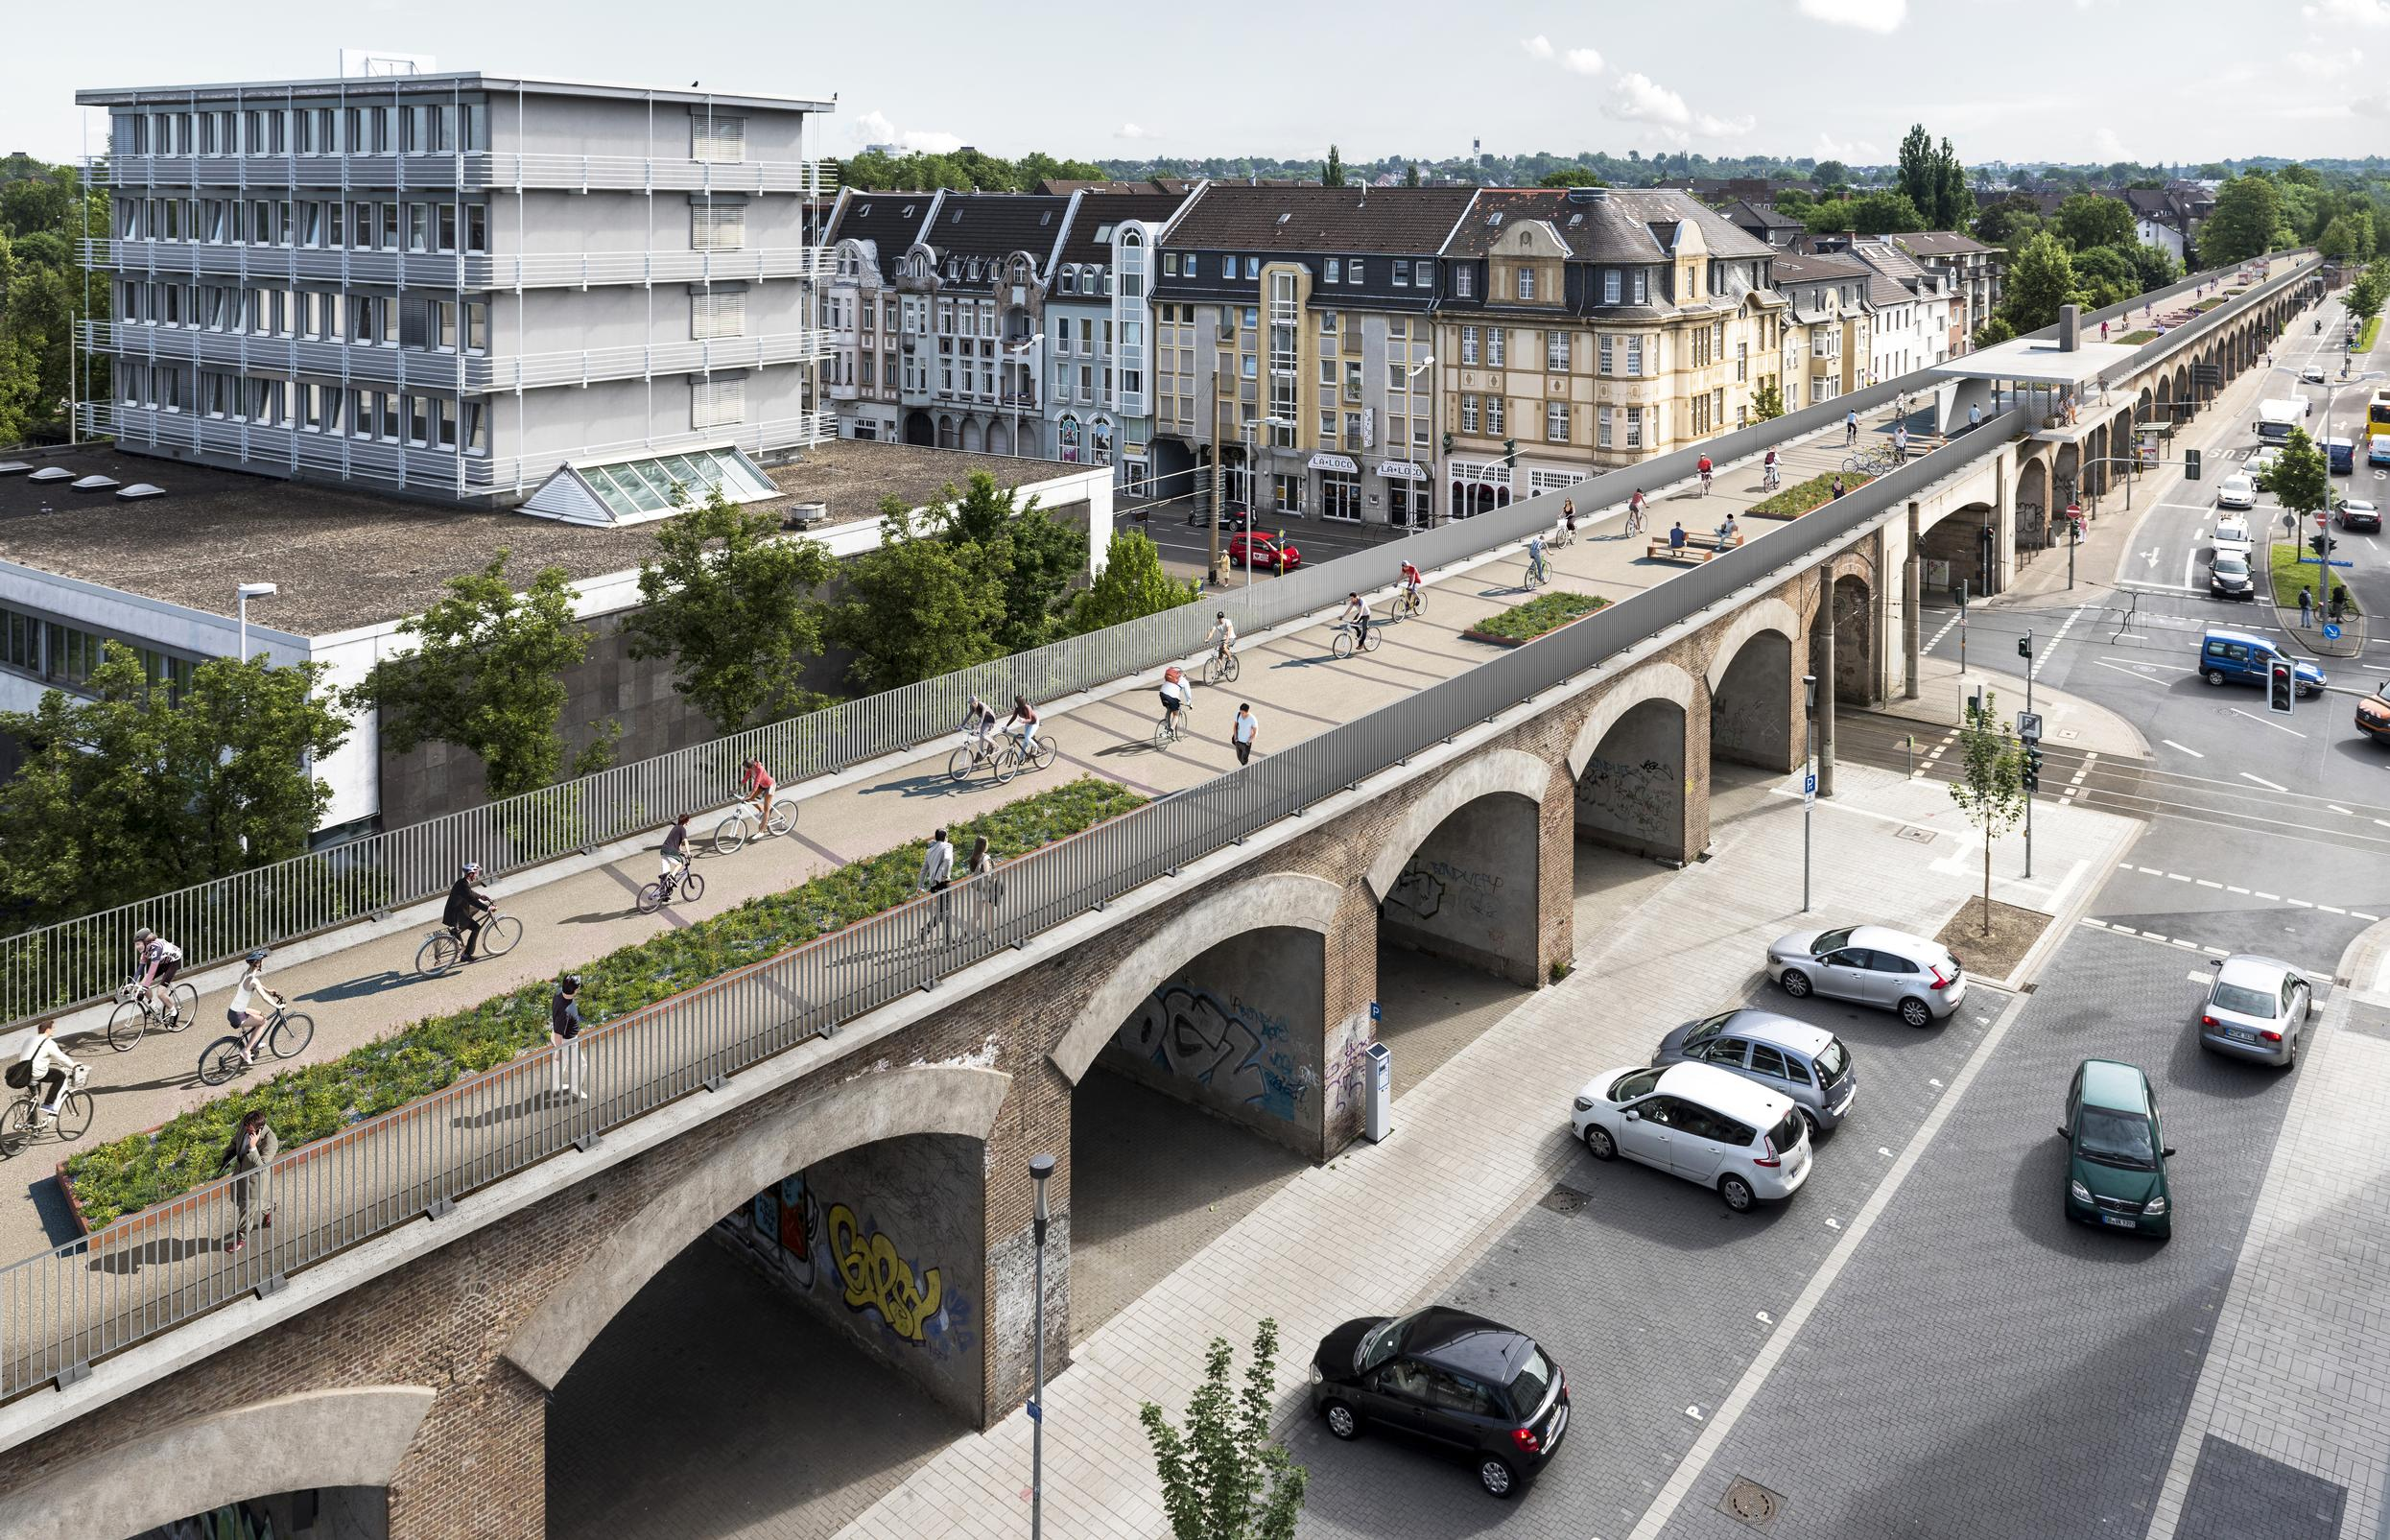 A region like the Ruhr, known as Germany's 'Rust Belt', needs strong connections in both the practical and figurative senses. The RS1 fulfils both the Ruhr`s technical and its spiritual needs, says Carsten. This illustration shows Mülheim's city viaduct to the bridge over the Ruhr